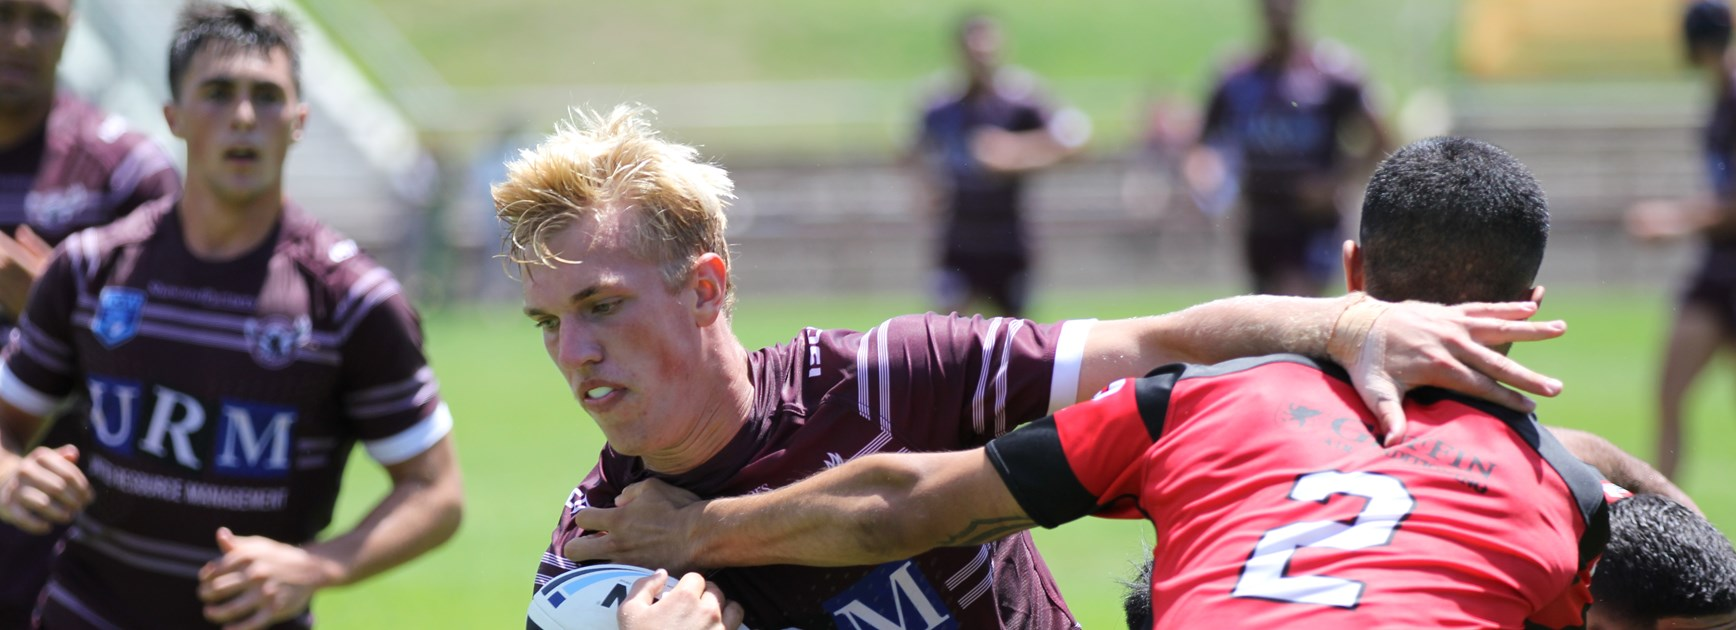 Manly beat Norths 28-24 in SG Ball